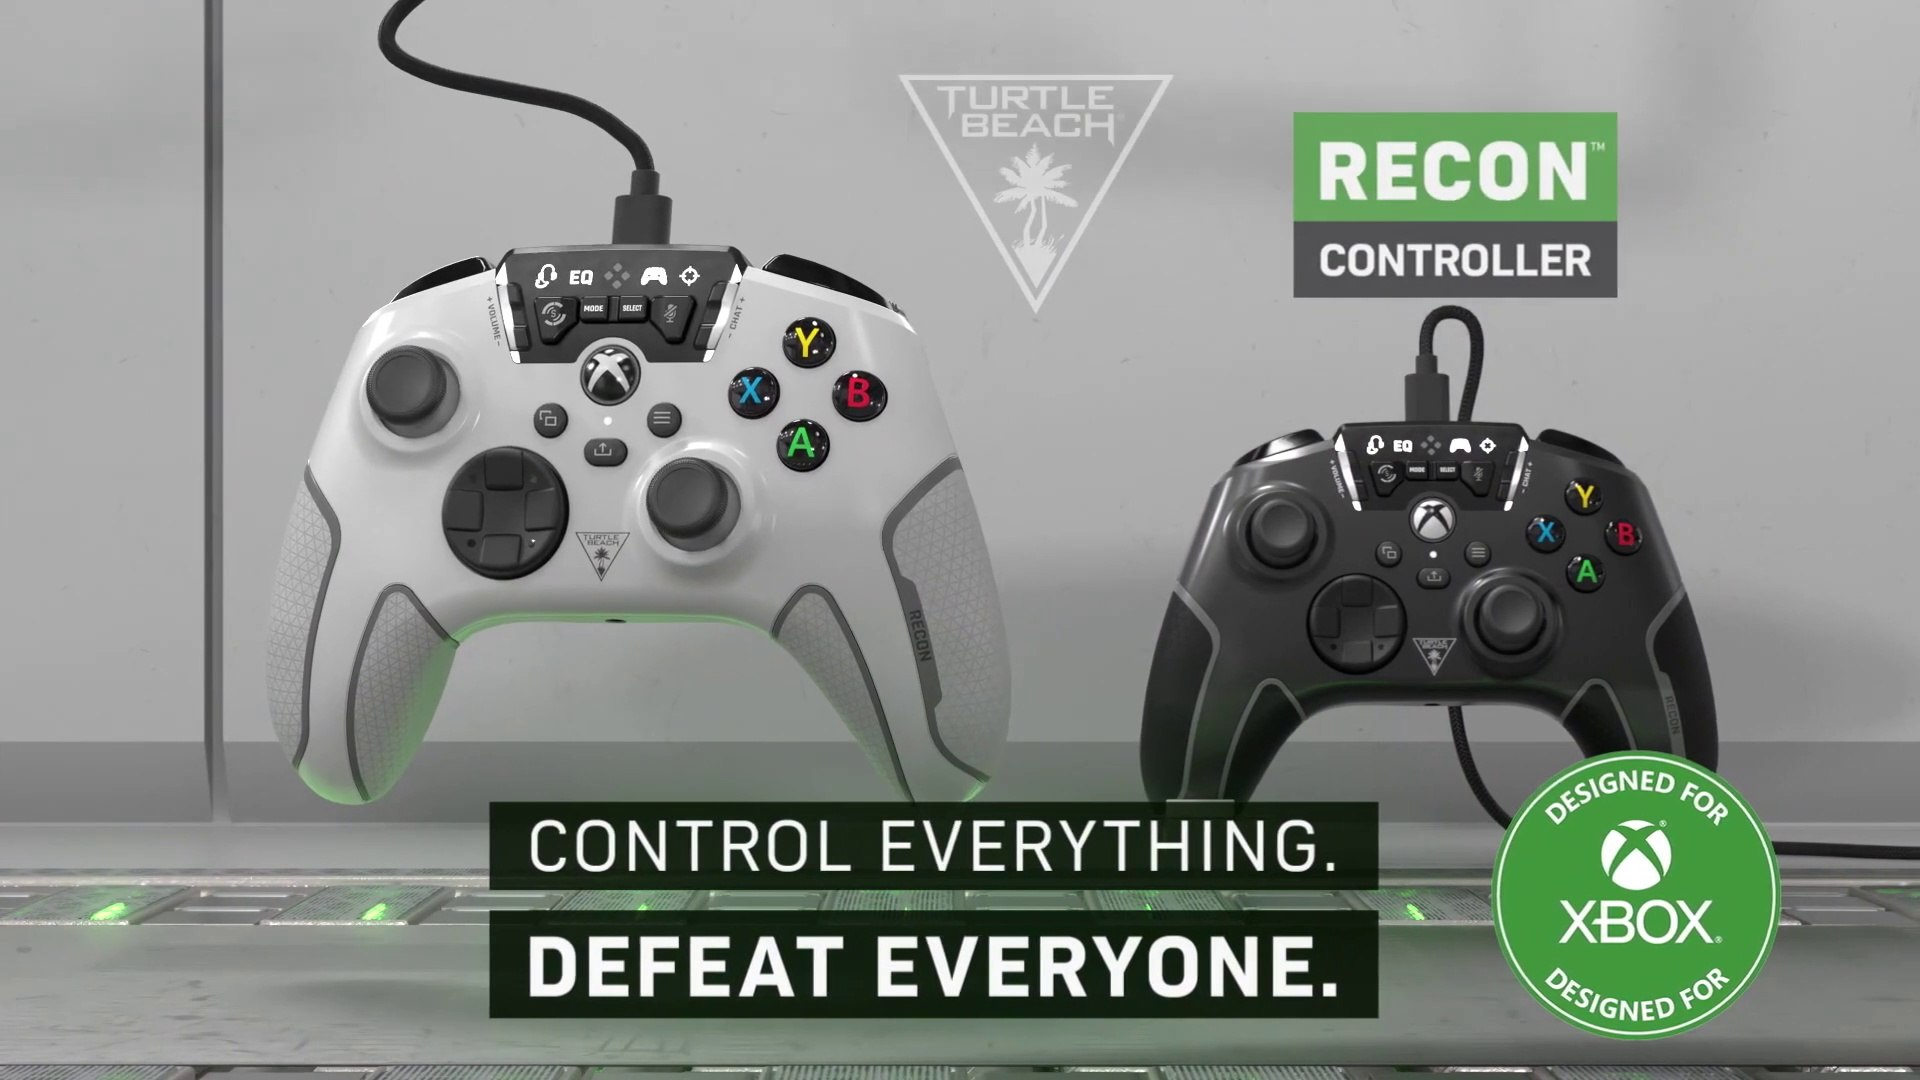 TURTLE BEACH'S AWARD-WINNING RECON CONTROLLER FOR XBOX NOW AVAILABLE AT RETAILERS GLOBALLY